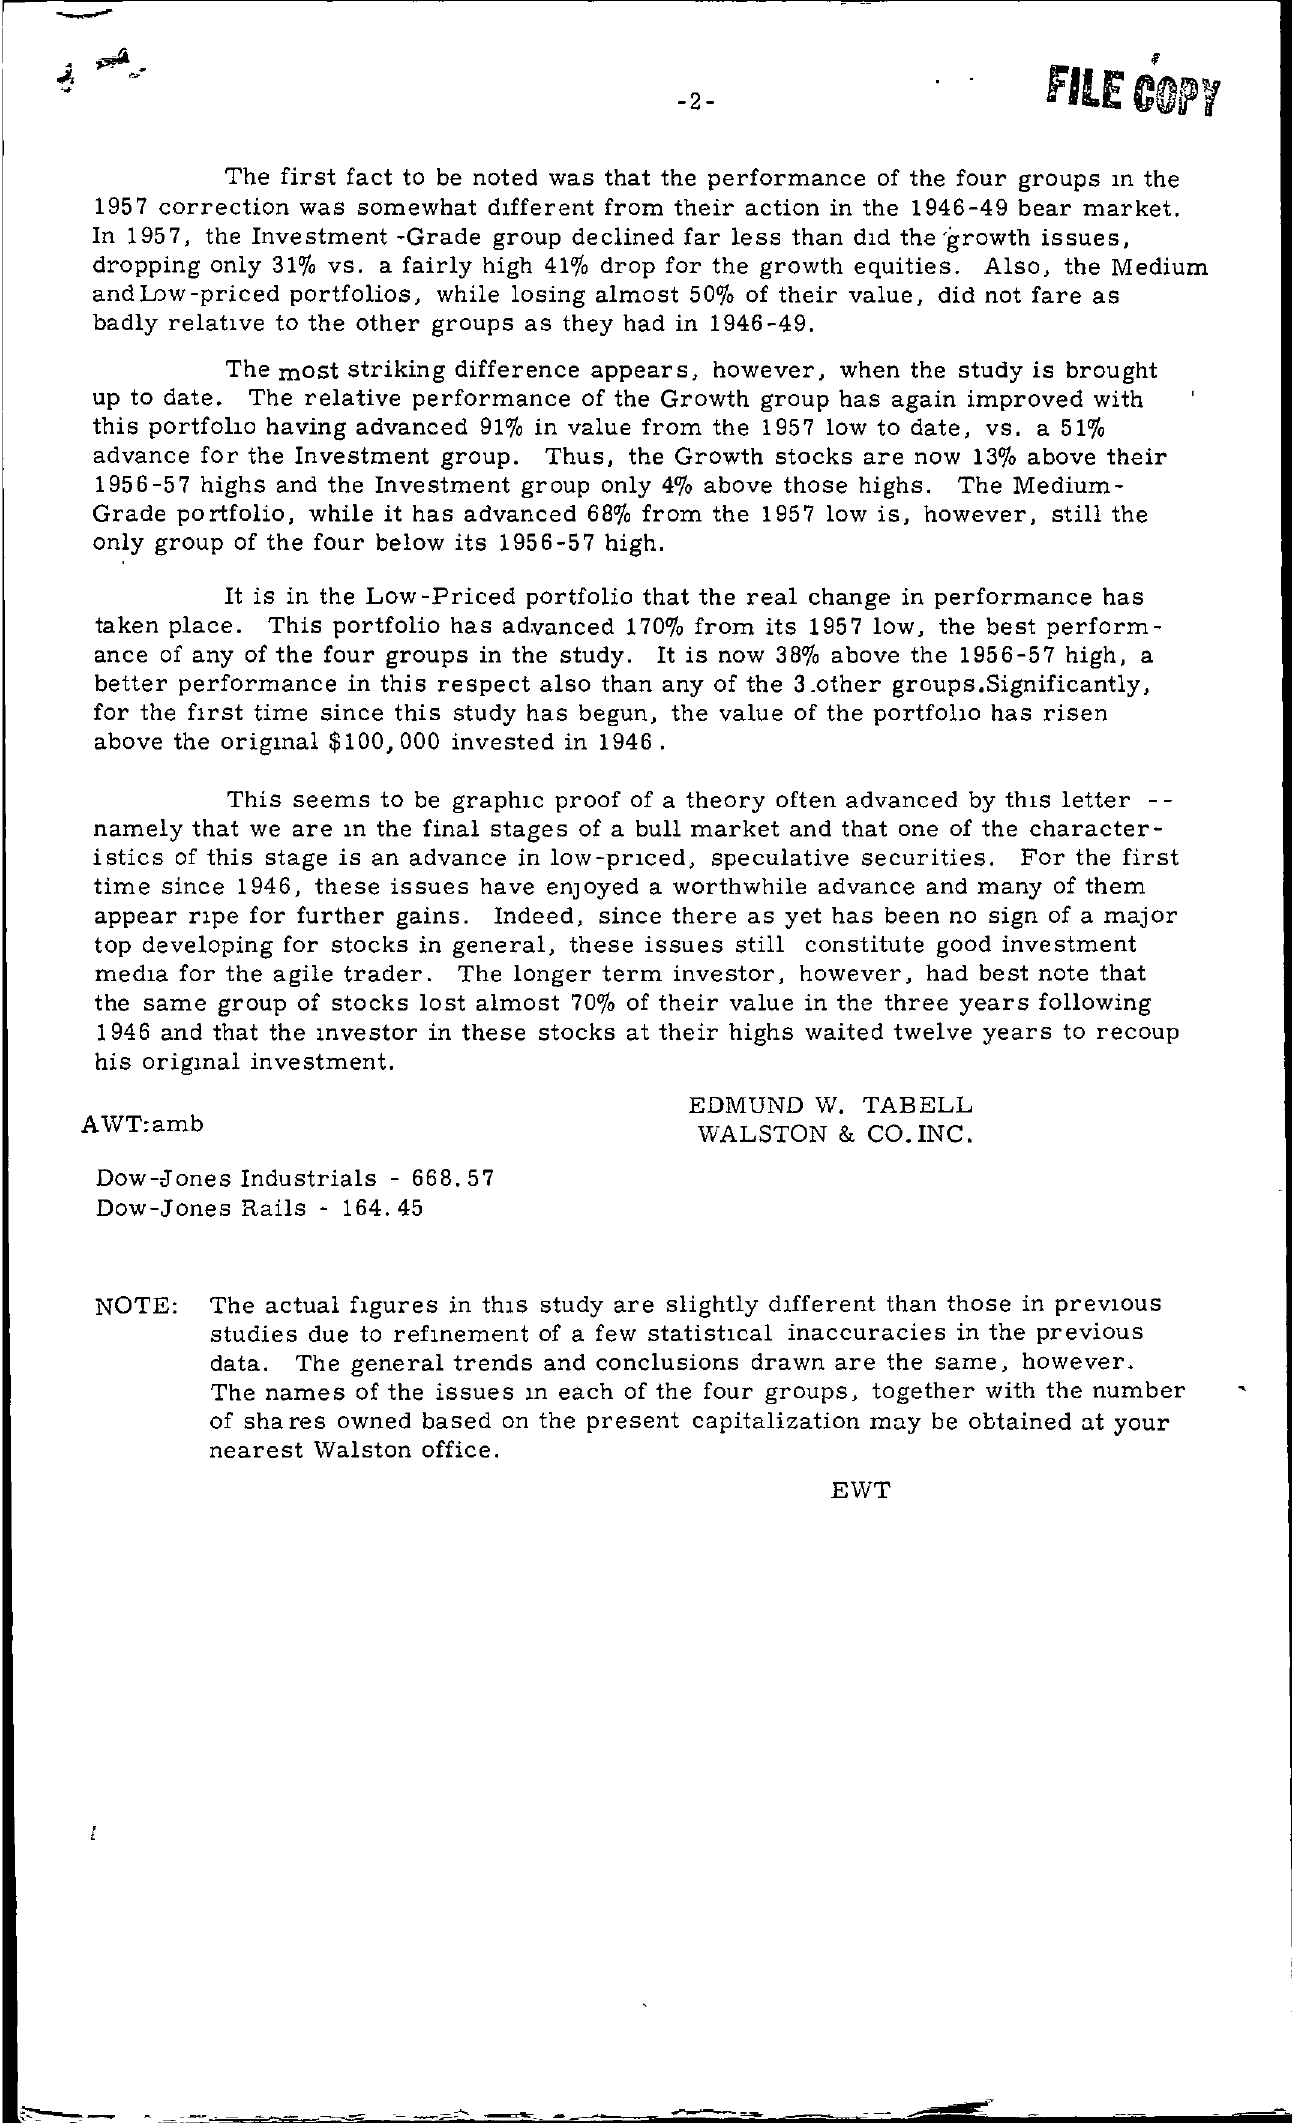 Tabell's Market Letter - August 07, 1959 page 2